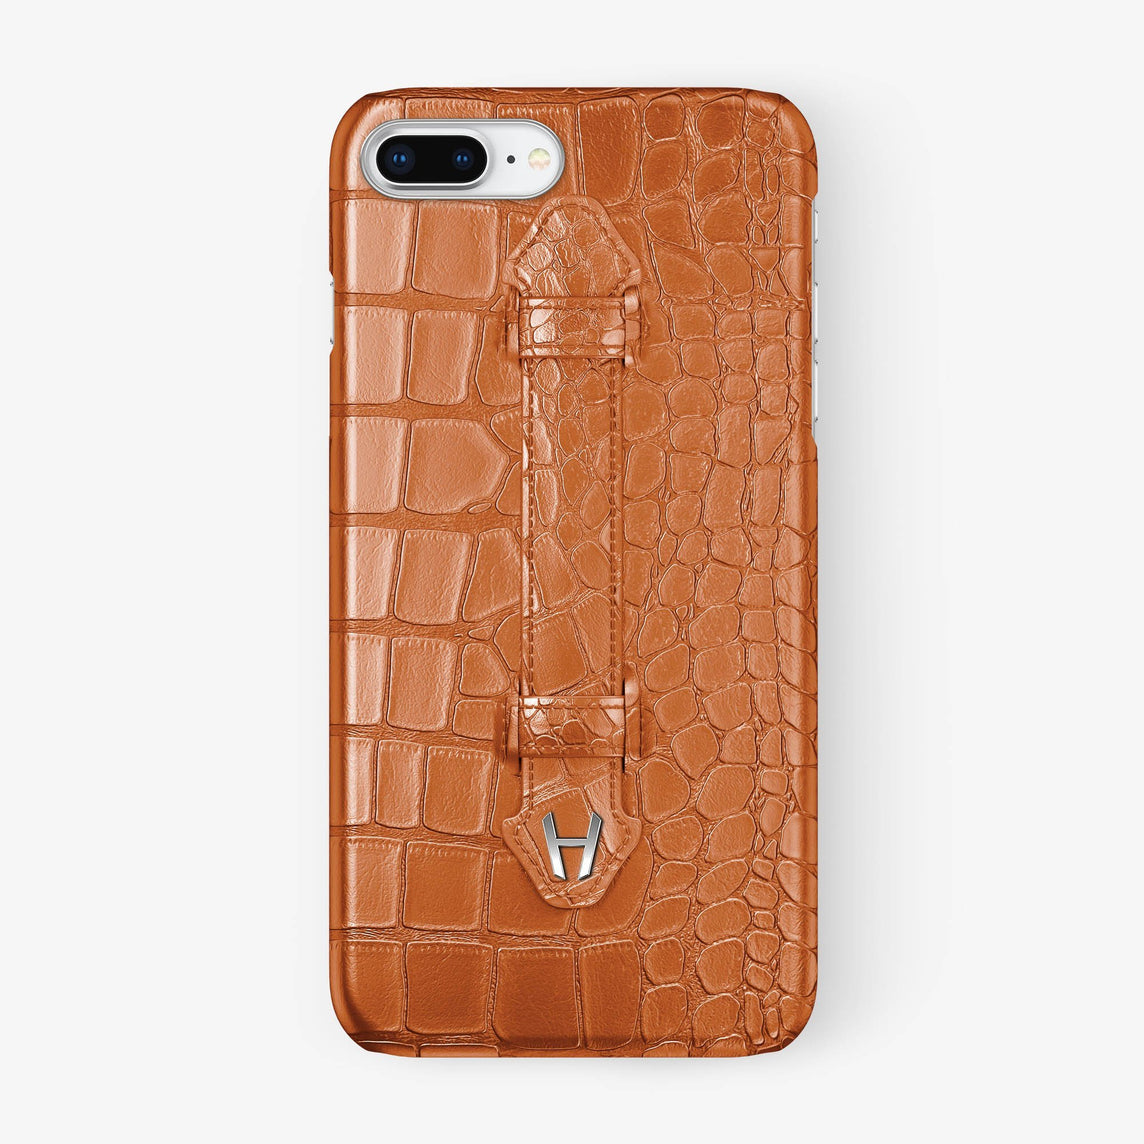 Orange Alligator iPhone Finger Case for iPhone 7/8 Plus finishing stainless steel - Hadoro Luxury Cases